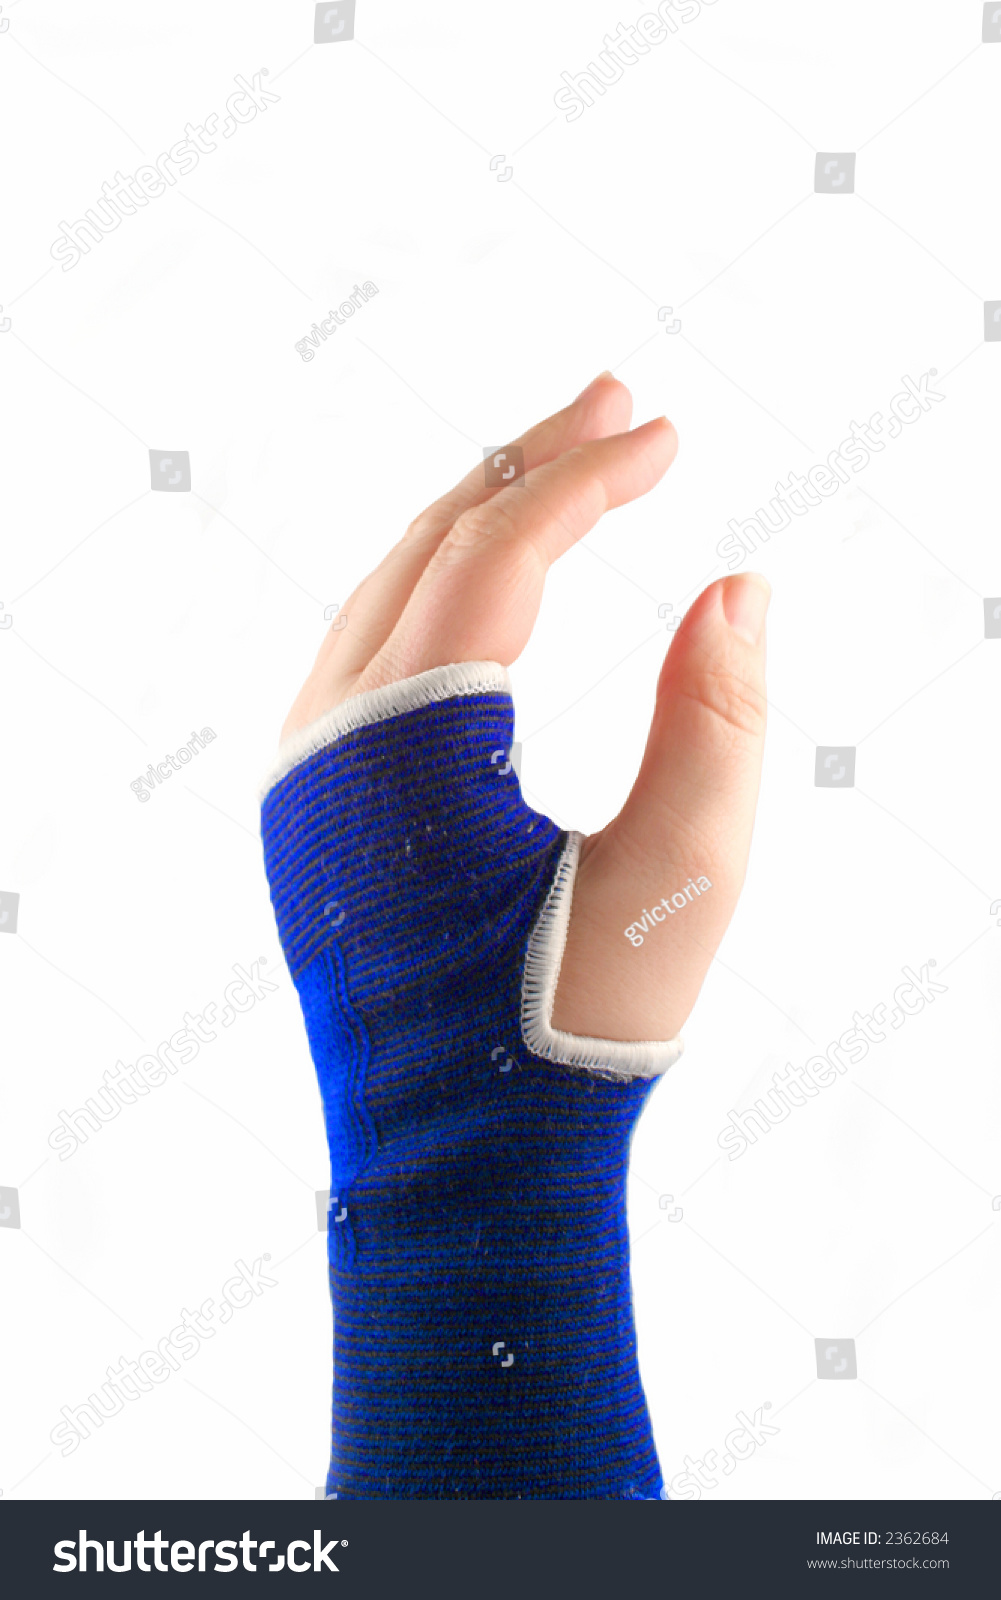 how to get a sprained wrist